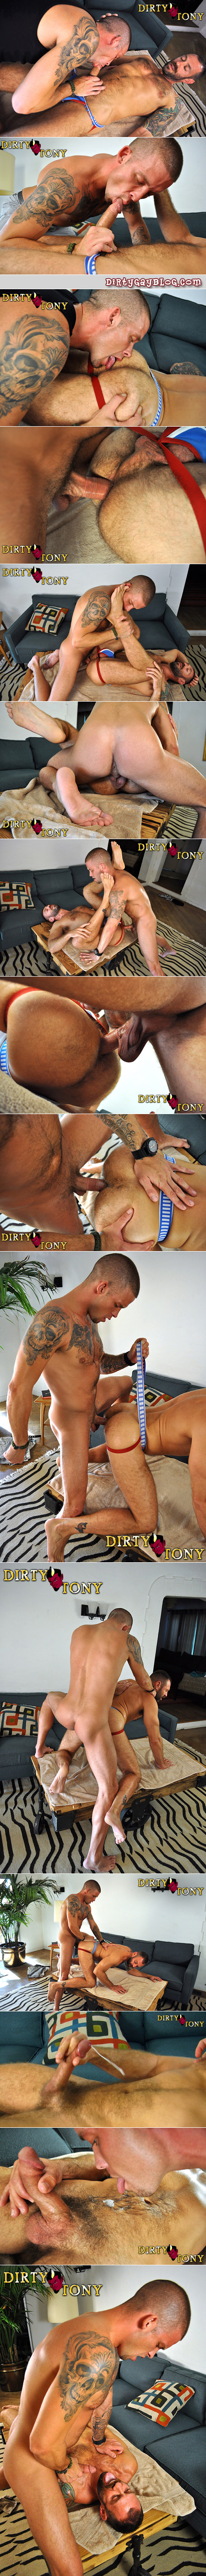 Tan, tattooed military man fucks the hairy bubble butt of a hot bearded Daddy in a jockstrap.